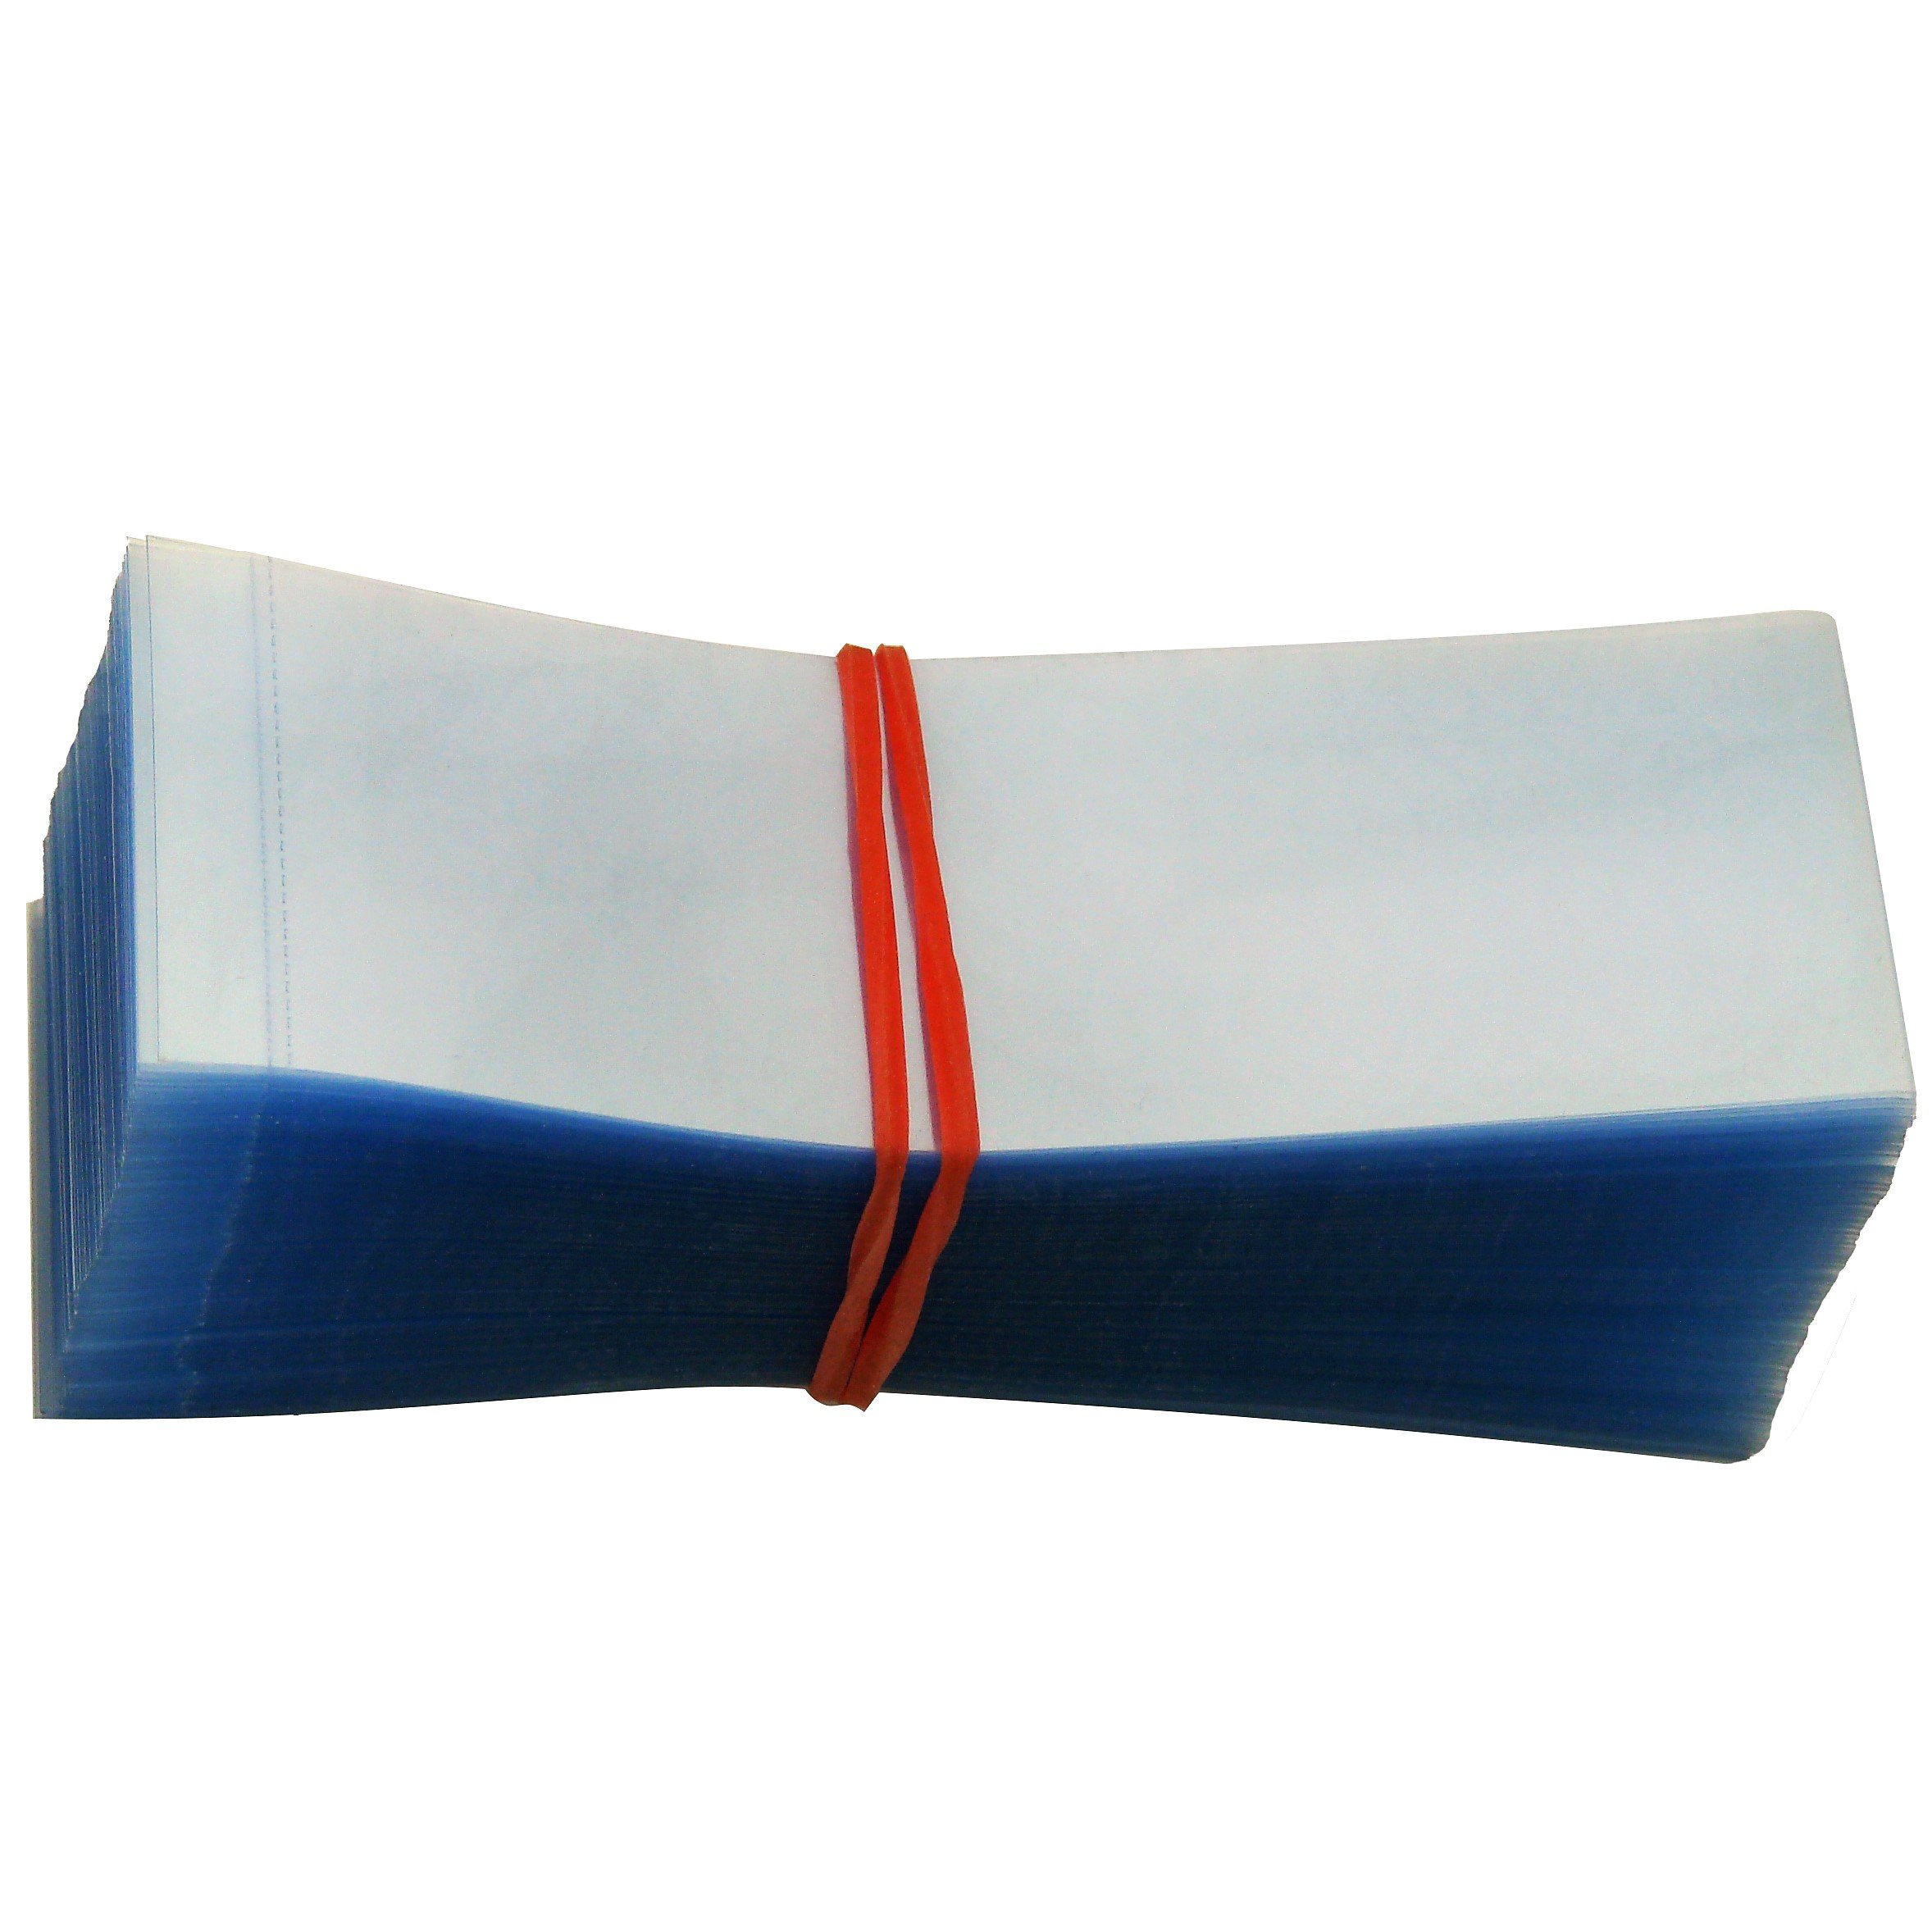 3 3/8'' x 1 1/8'' Perforated Shrink Wrap Bands Pack of 200 - Fits Cap Diameter 1 3/4'' to 2'' (Size Options) [Instructions Included]